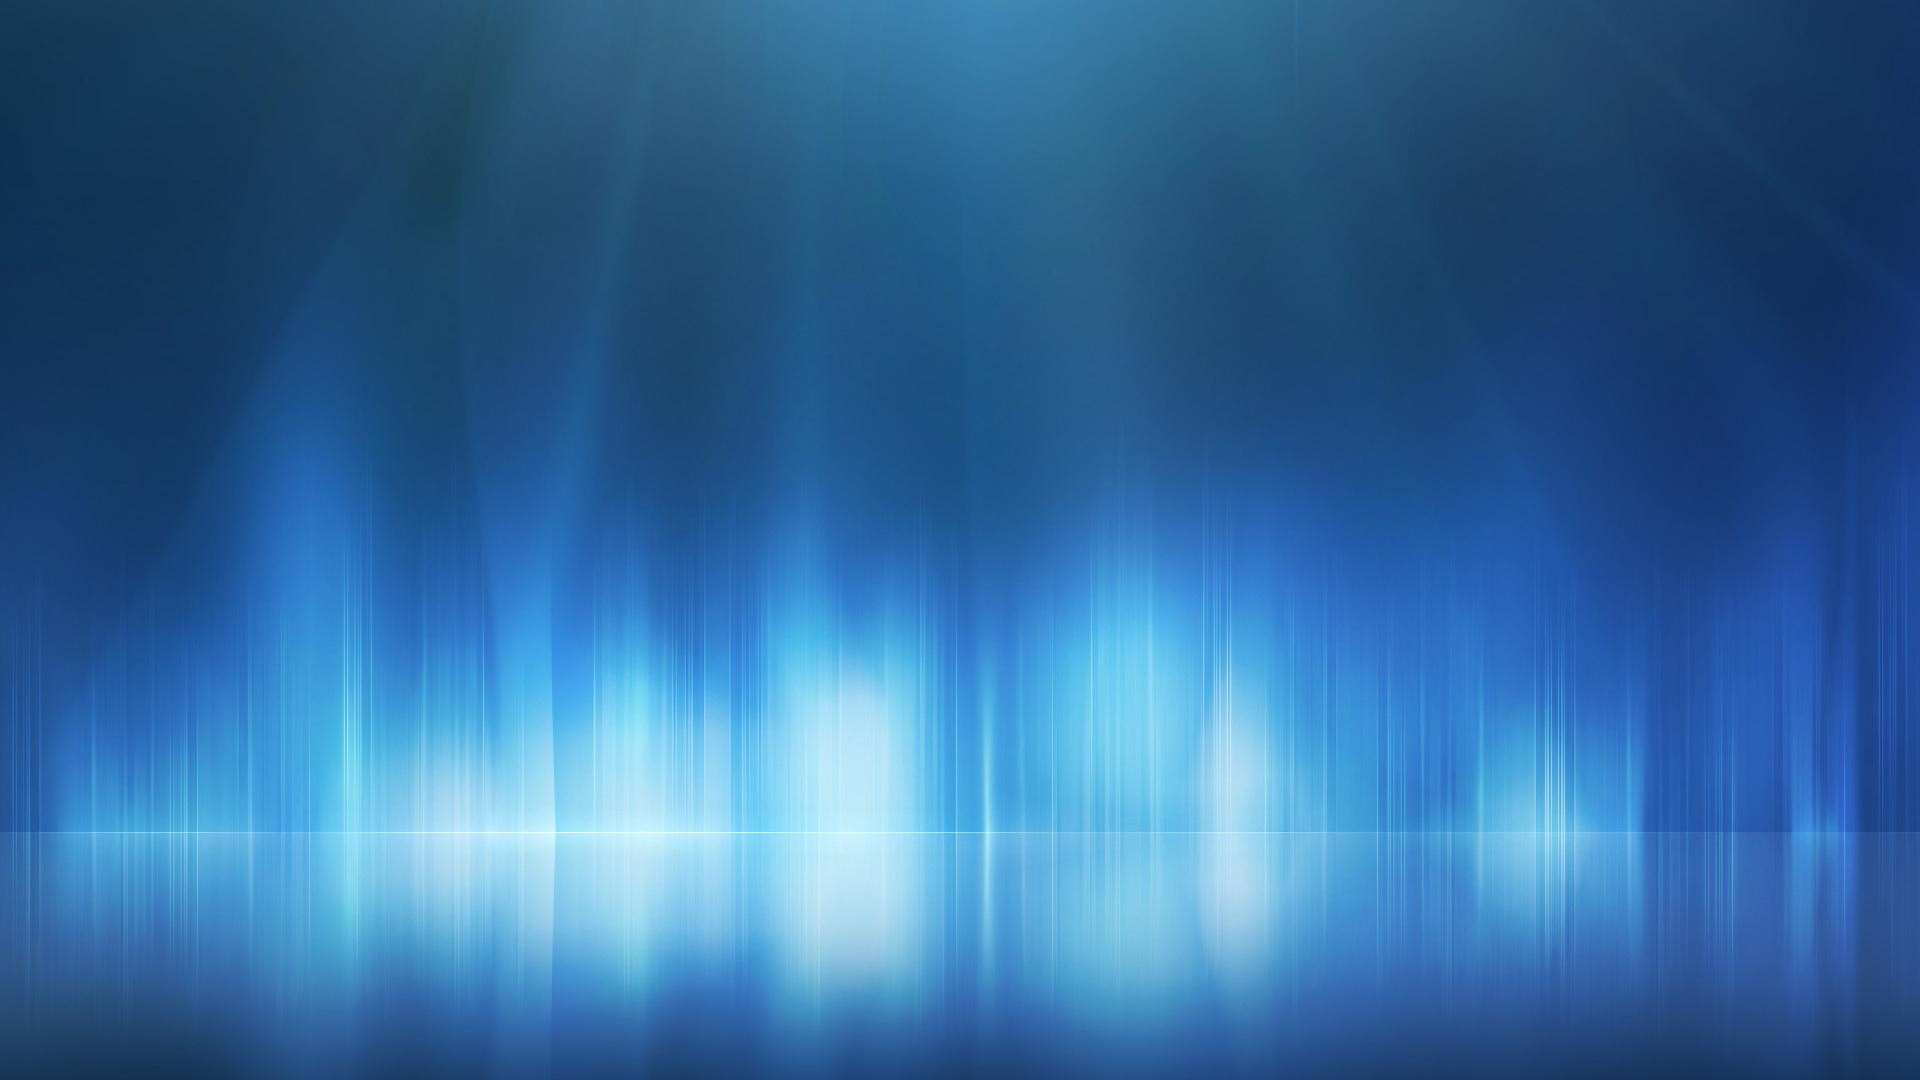 hd Blue dazzle light background for imac wide wallpapers :1280×800,1440×900,1680×1050